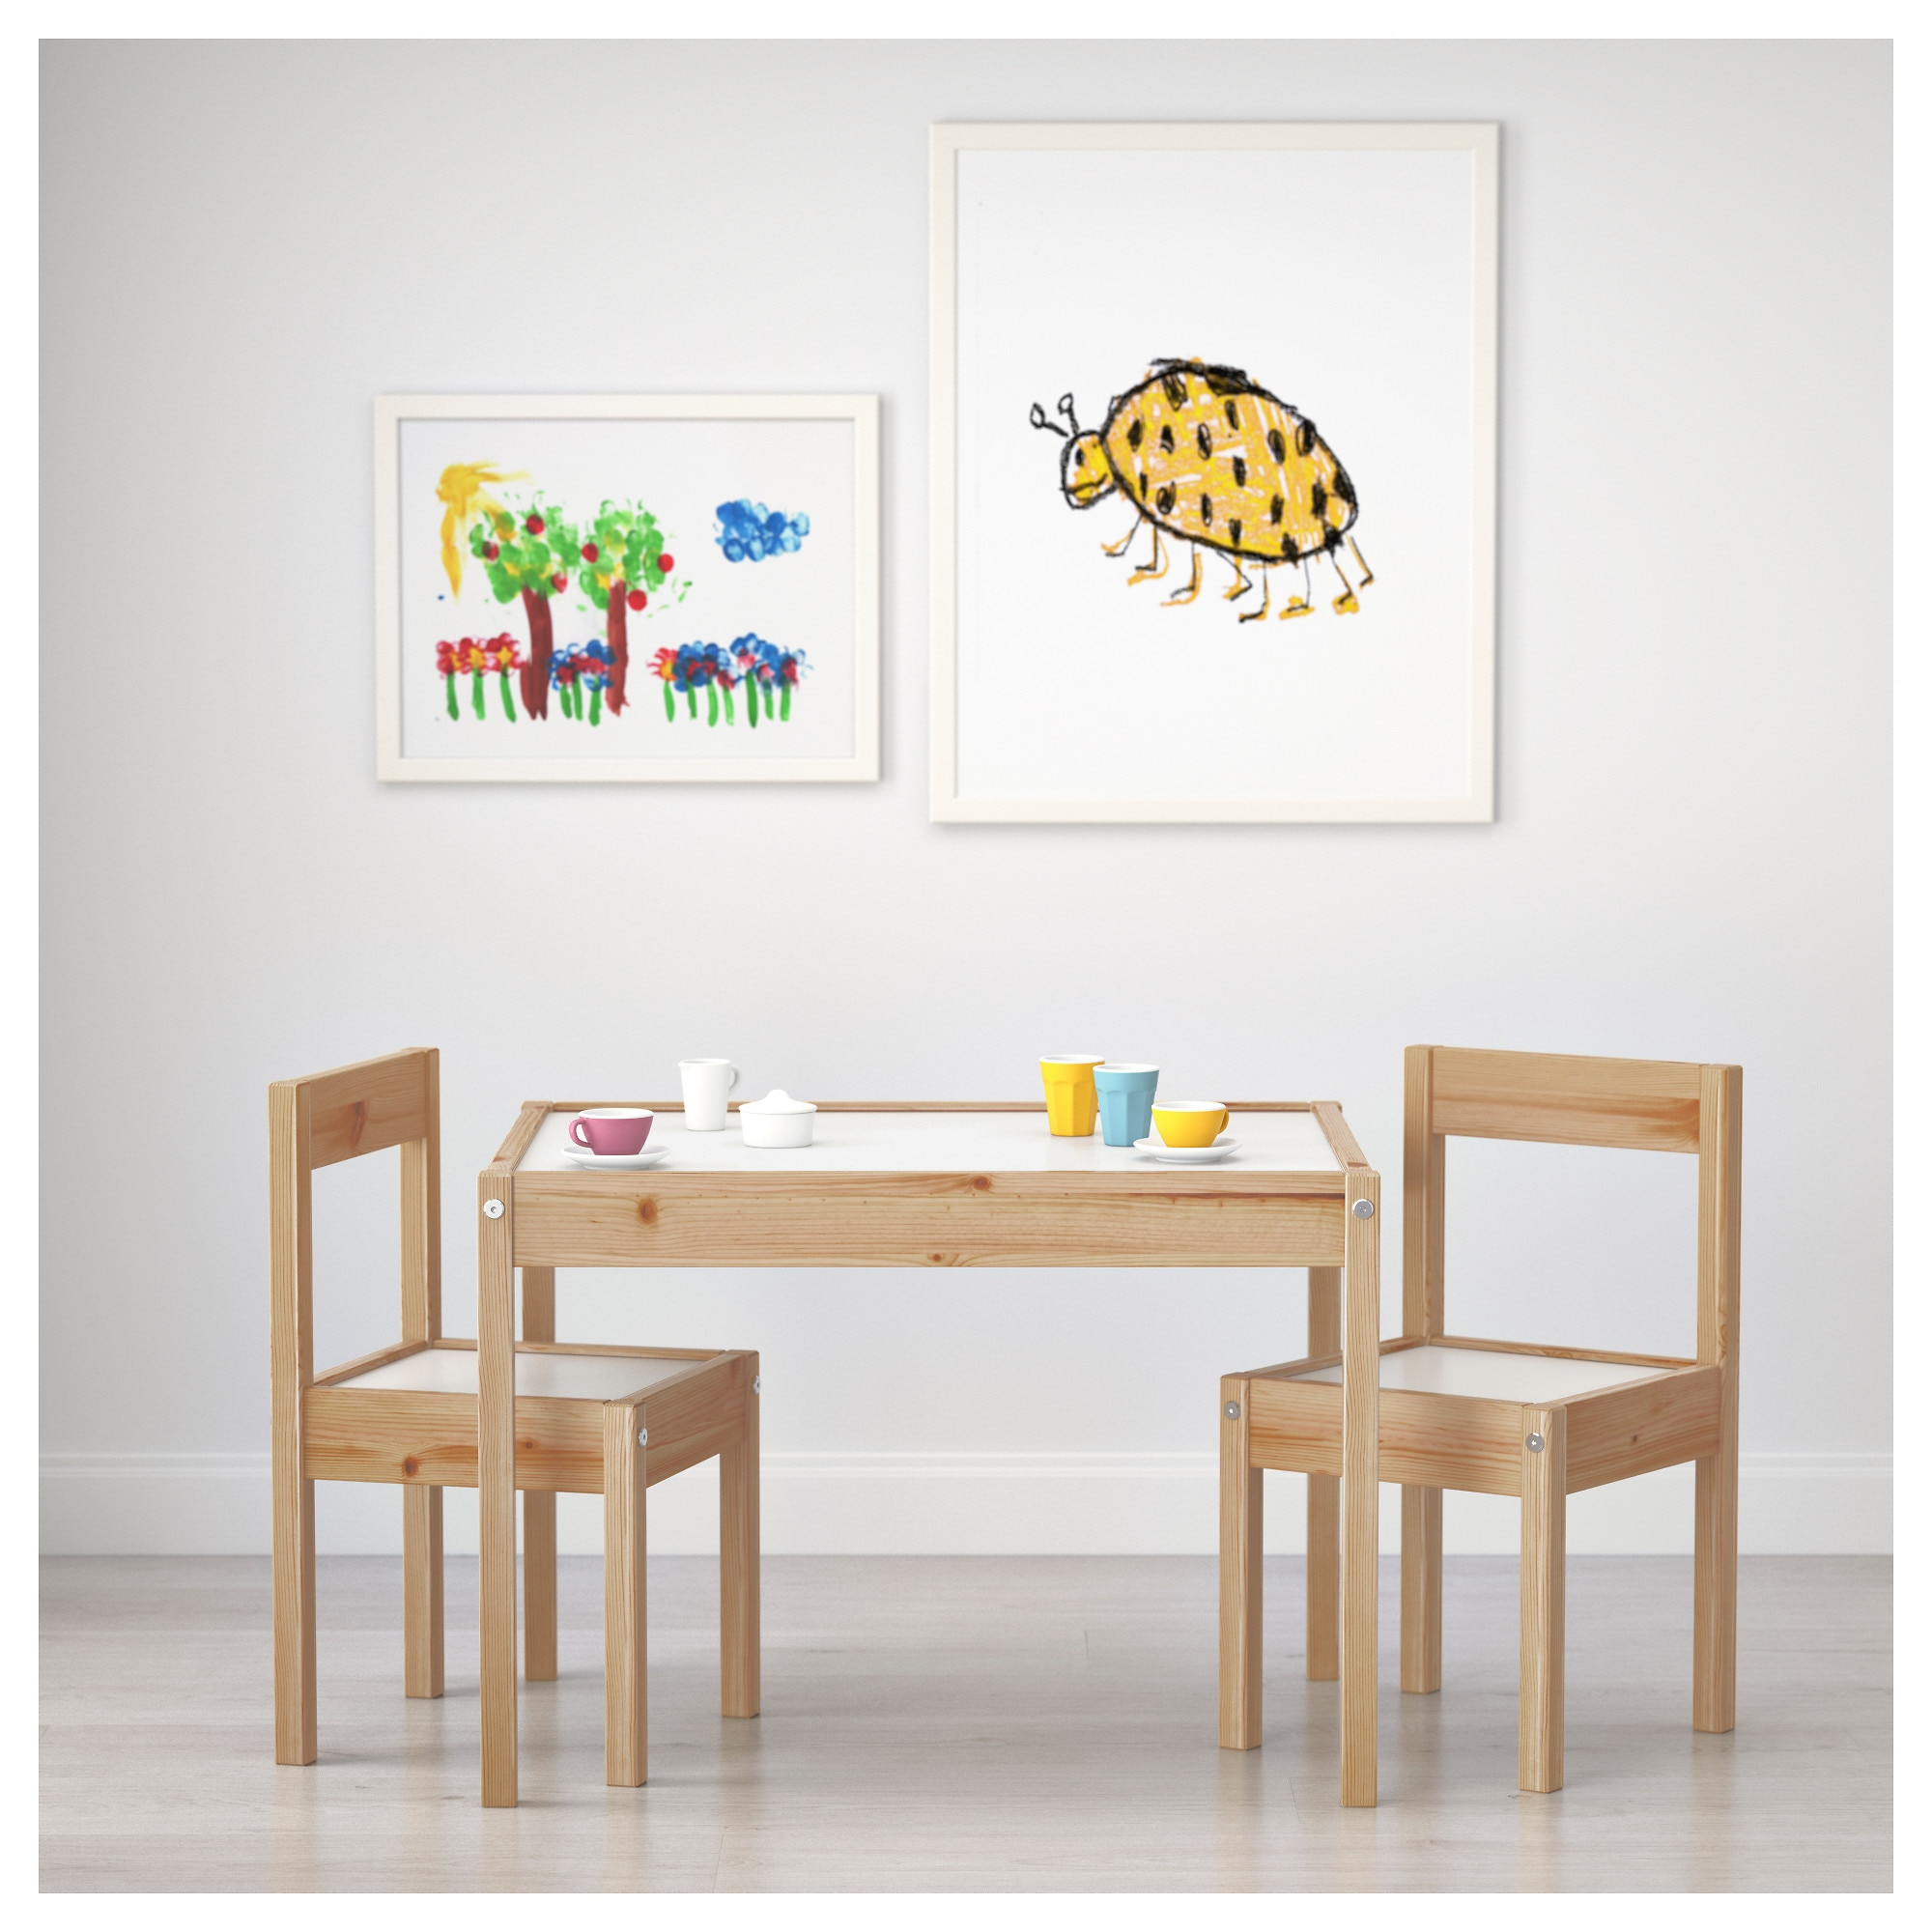 ikea childrens tables and chair sets furniture childrens table and chair sets new desk toddler. Black Bedroom Furniture Sets. Home Design Ideas